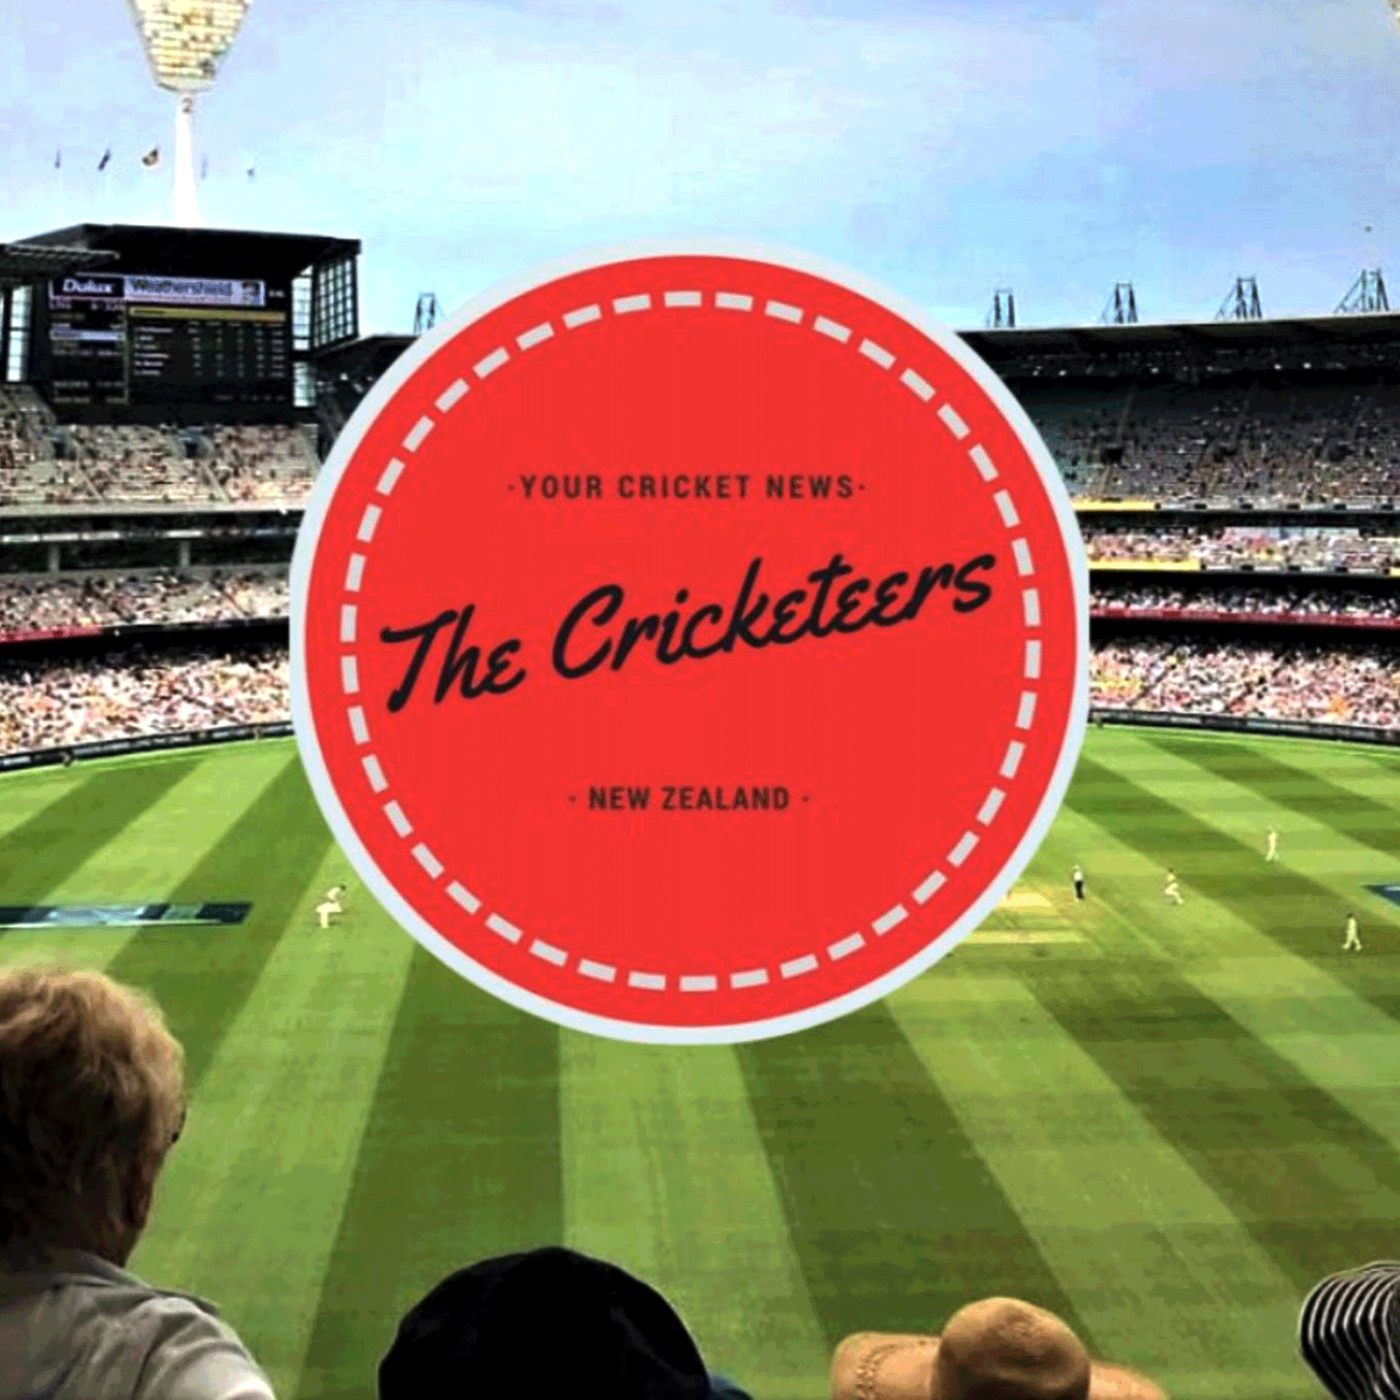 https://cdn.accessradio.org/StationFolder/freefm89/Images/Cricketeers3.png